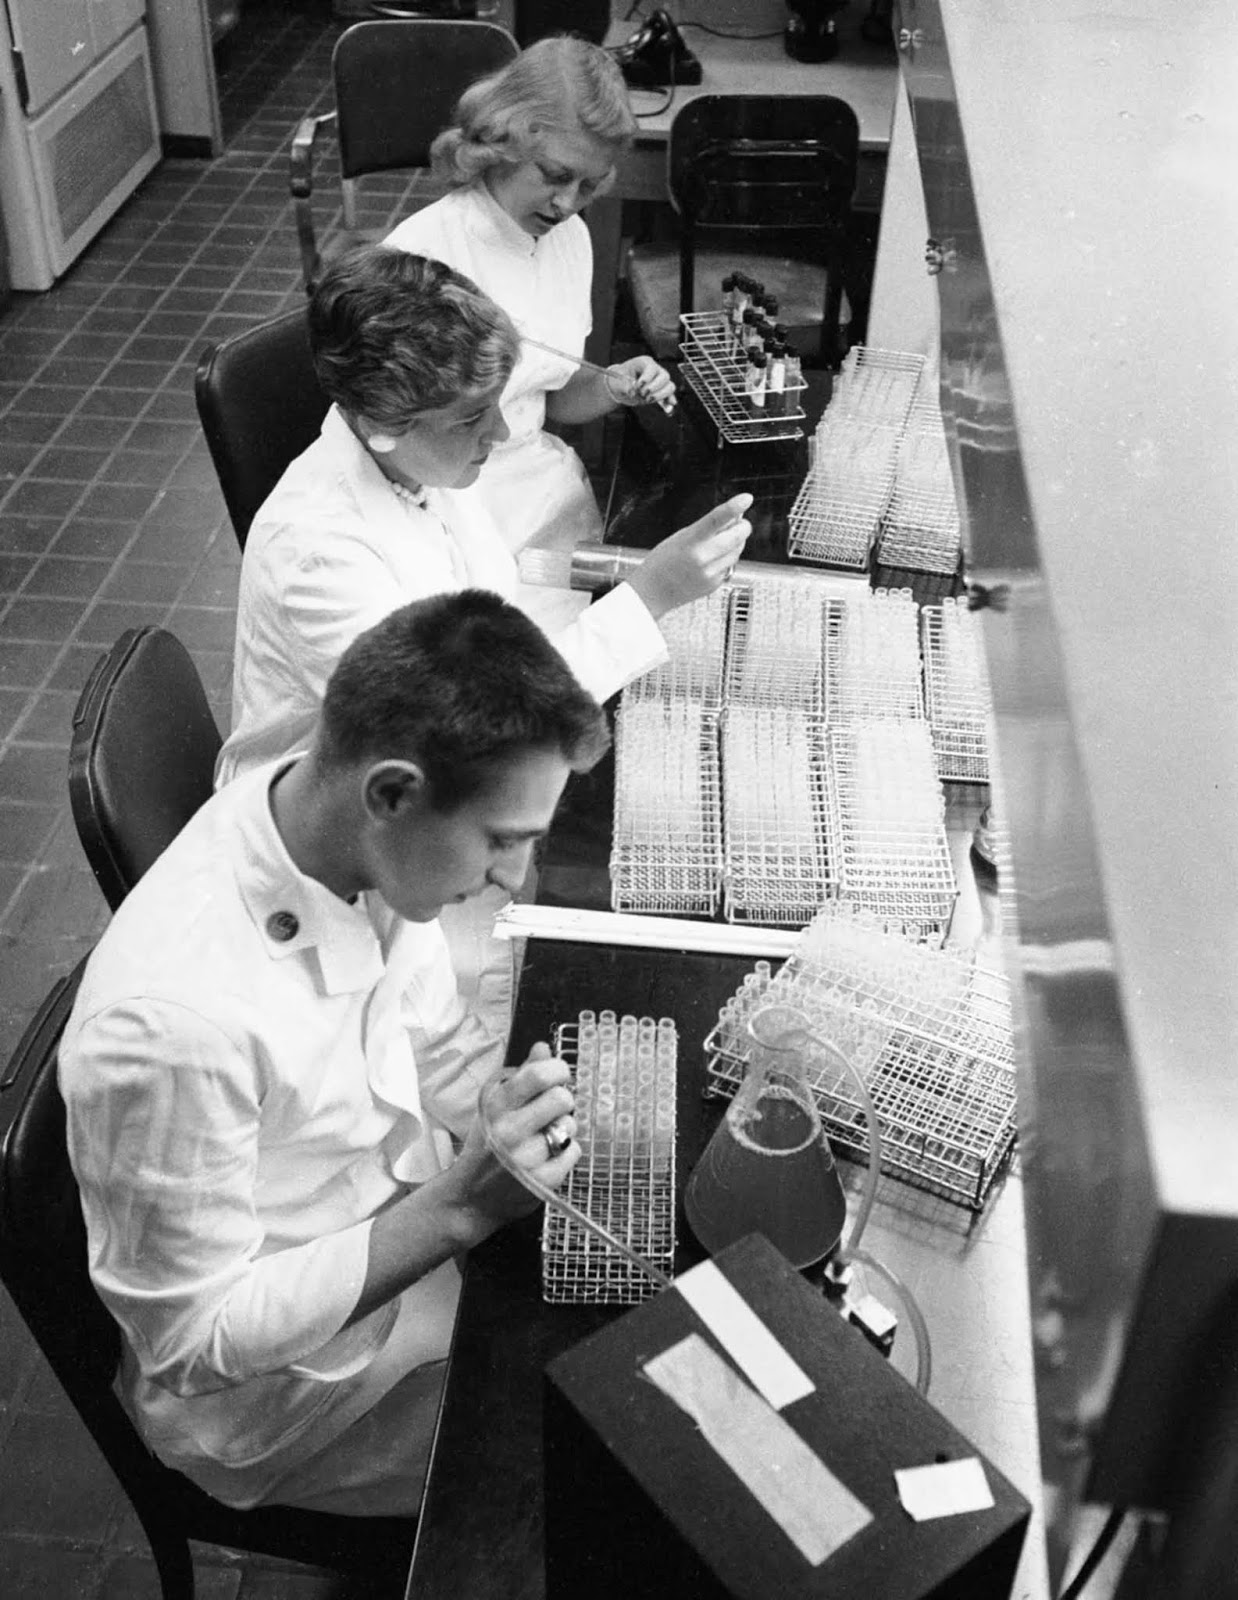 Researchers study the flu virus in a lab at Walter Reed Army Institute of Research, 1957.